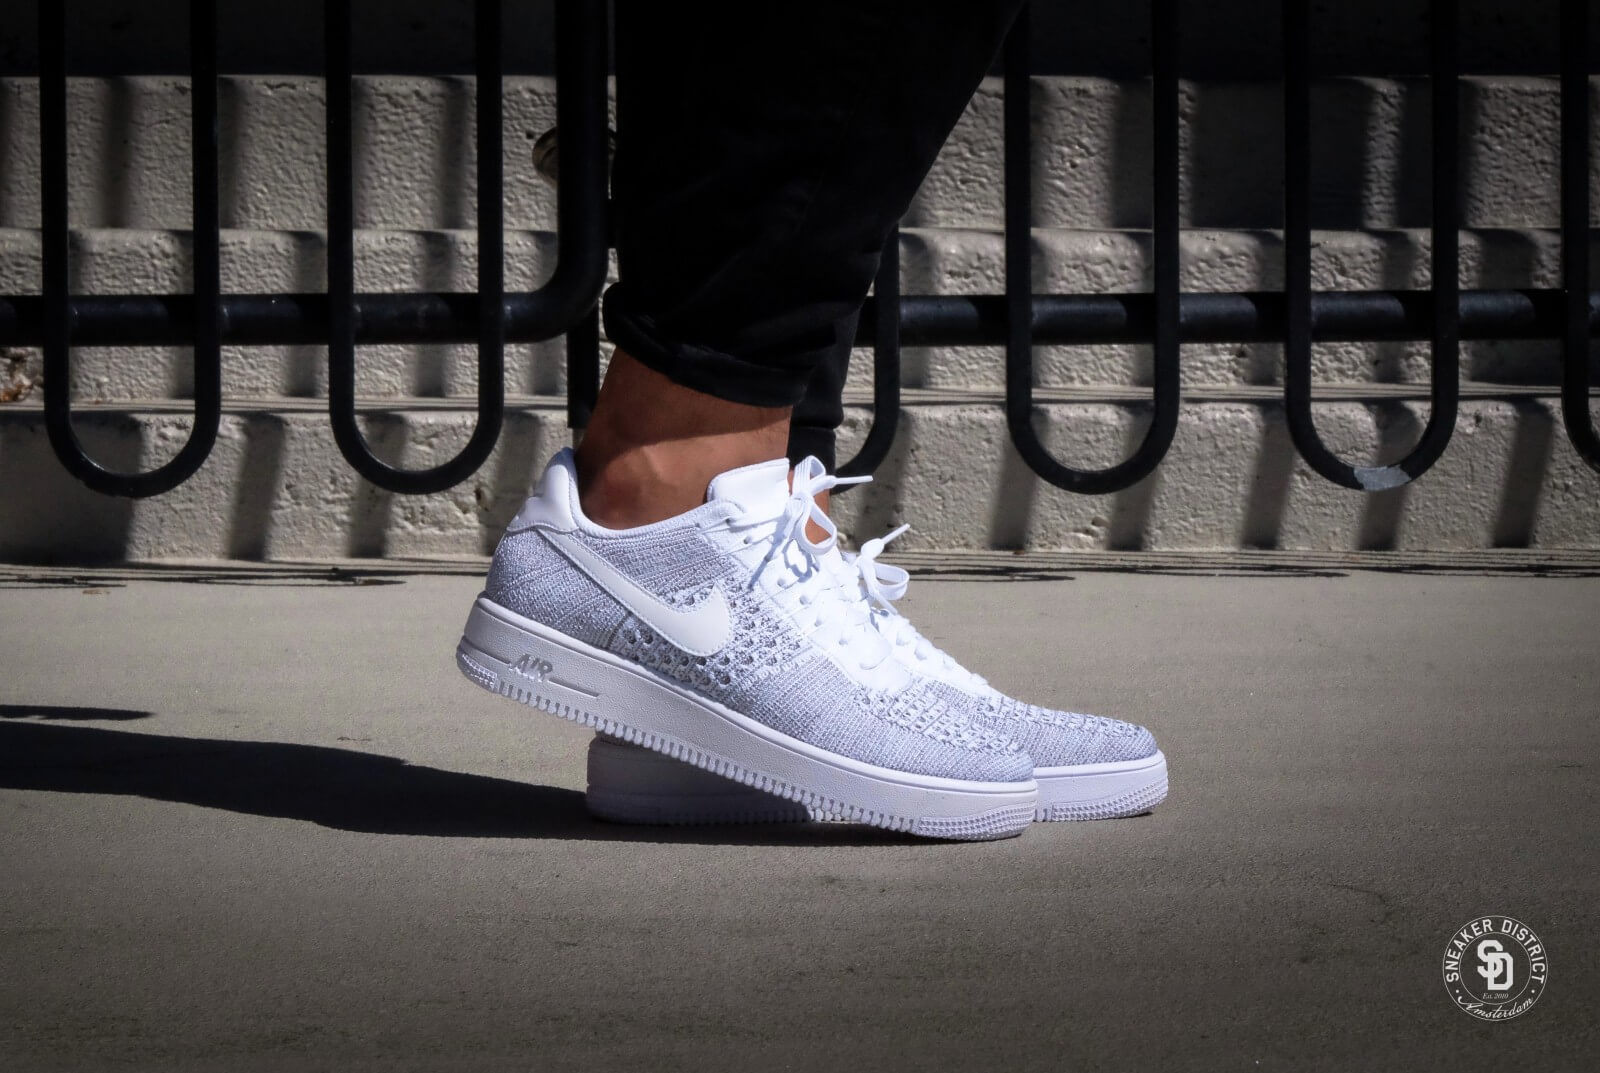 Zapatos 2018 varios diseños hermosa en color Nike Air Force 1 Ultra Flyknit Low - Cool Grey / White - 817419-006